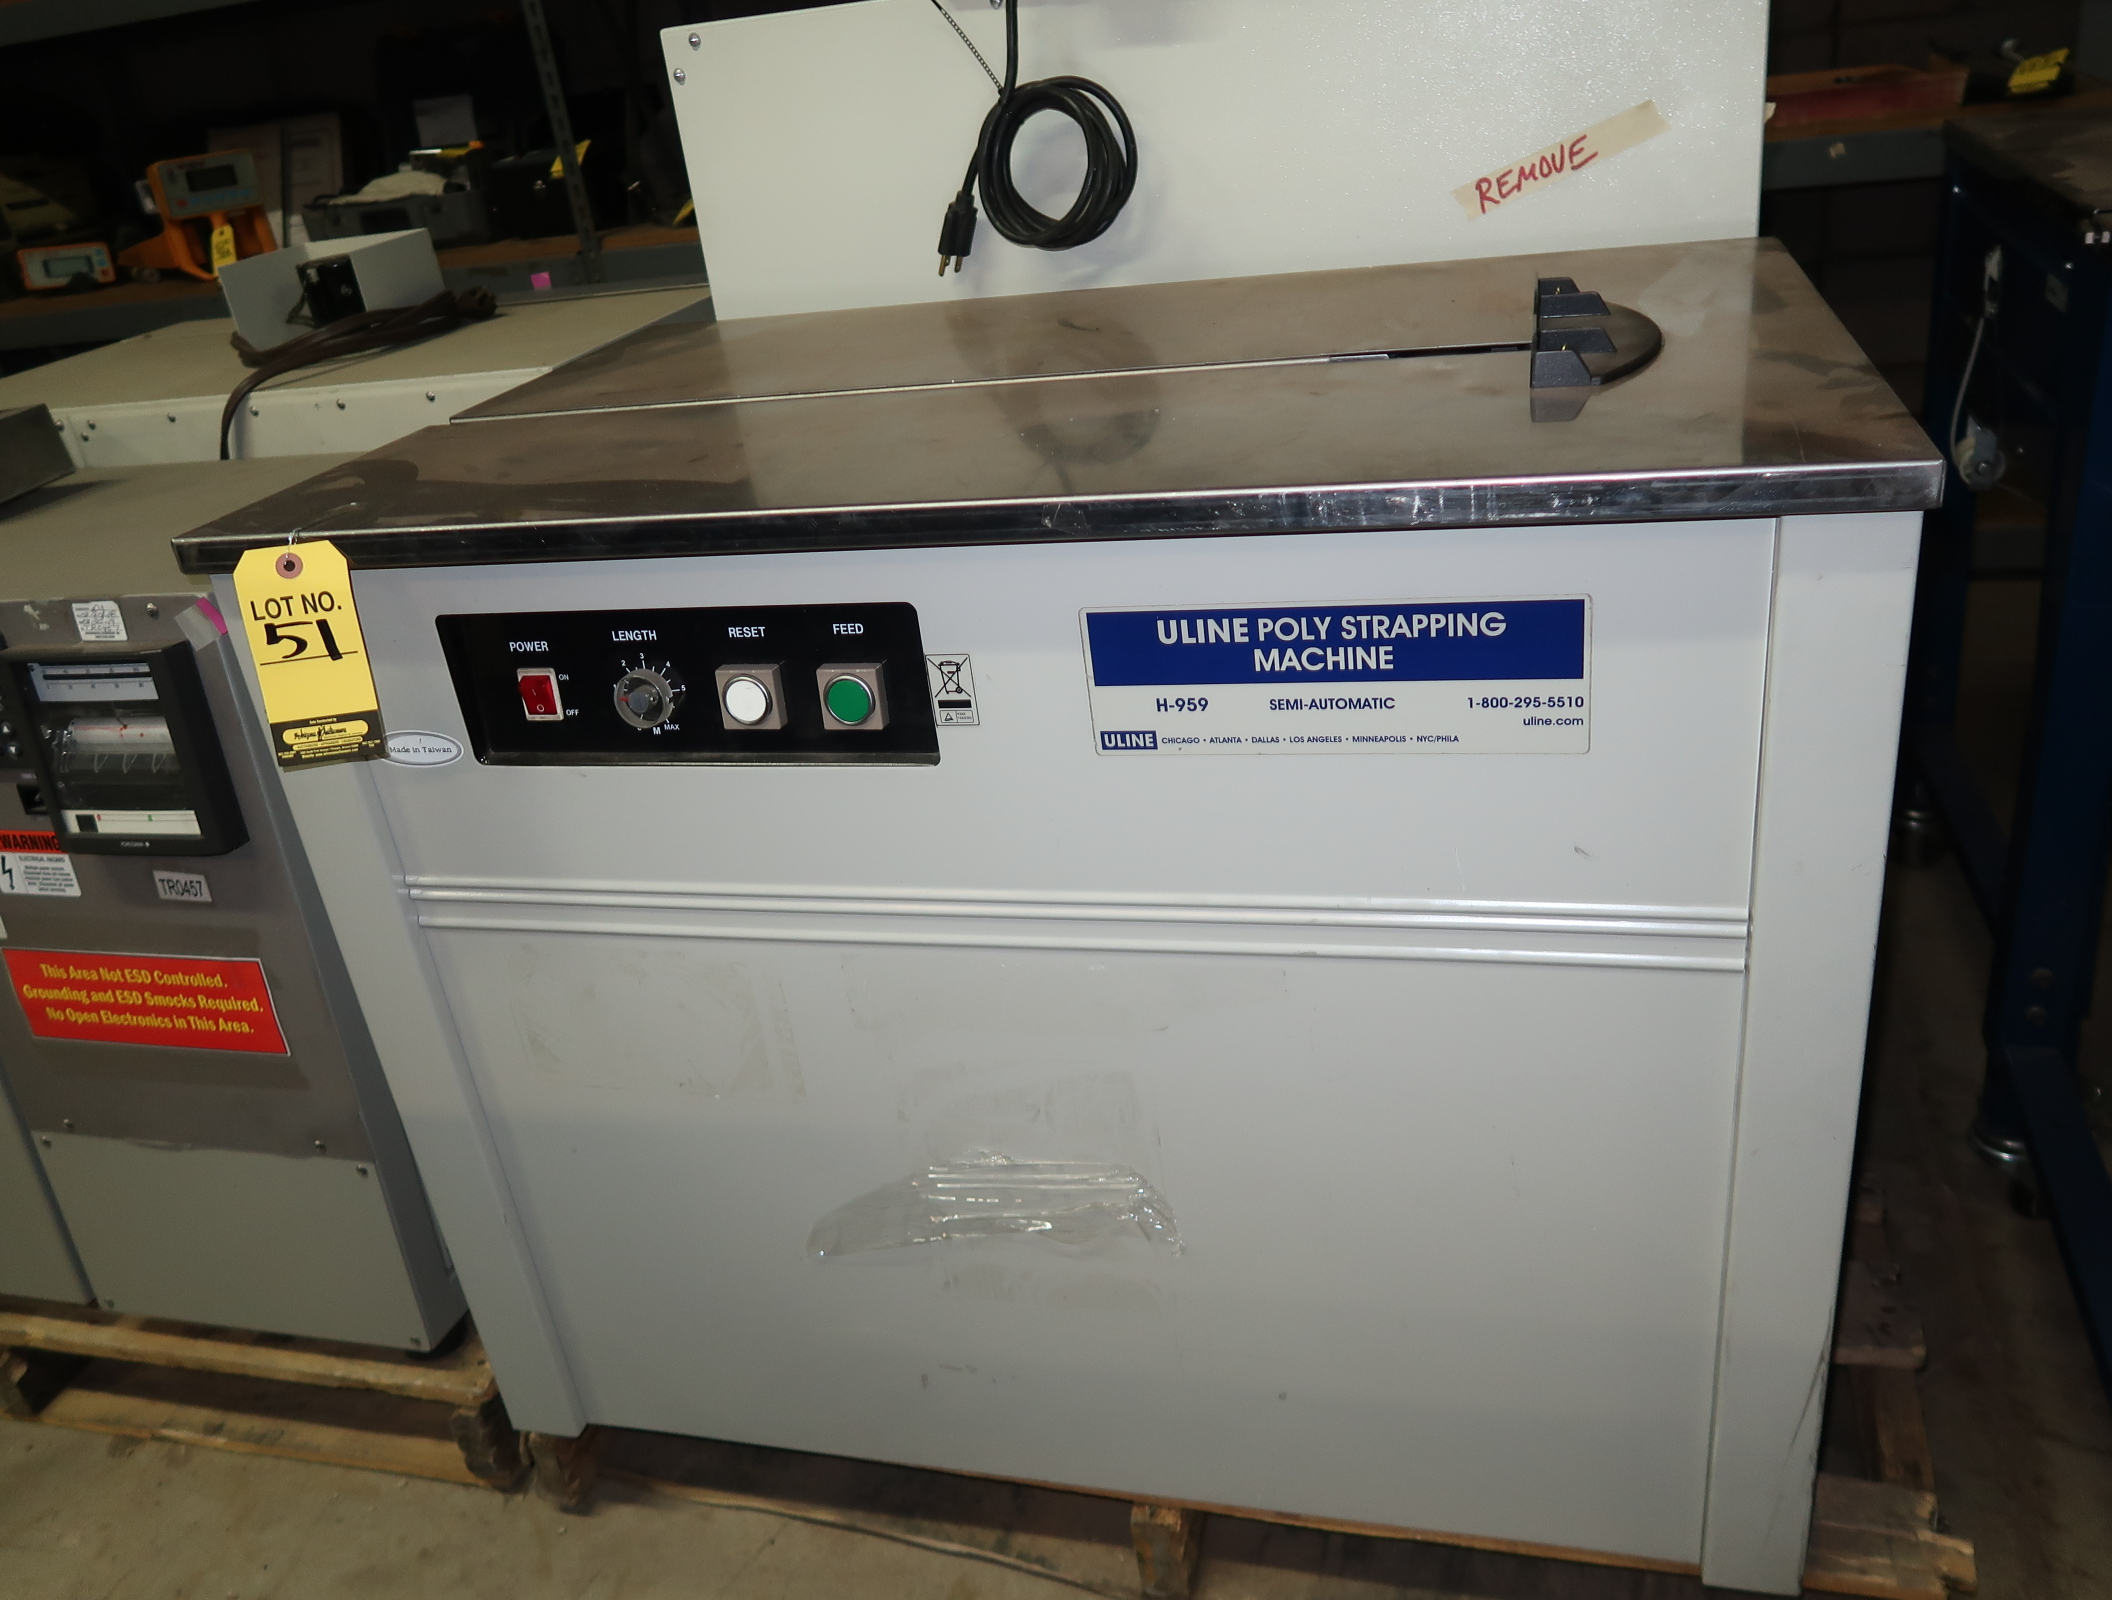 ULINE POLY STRAPPING MACHINE MDL. H-959